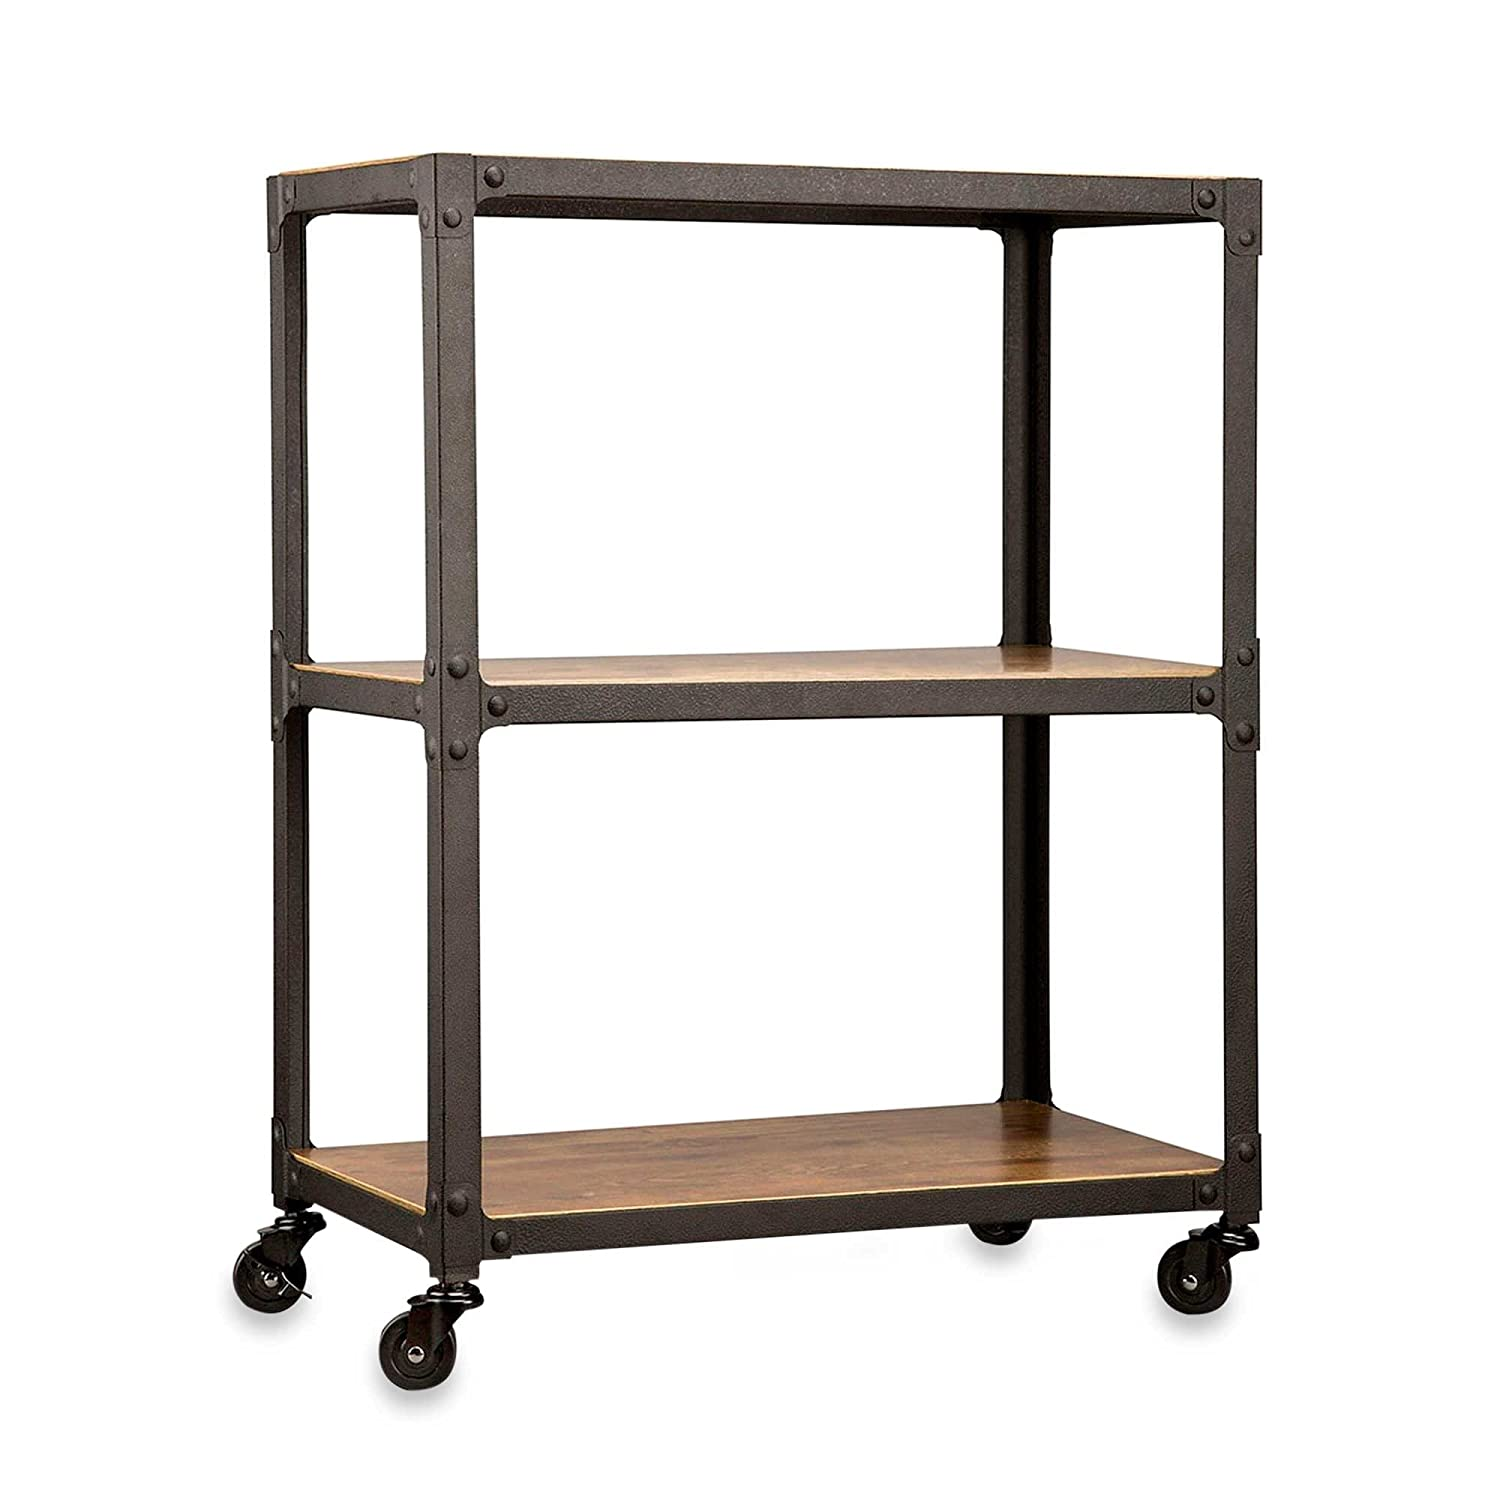 Kitchen cart metal - Amazon Com Loft Living 3 Tier Sturdy Antique Wood Finish Metal Frame Rolling Cart 30 In High Kitchen Dining